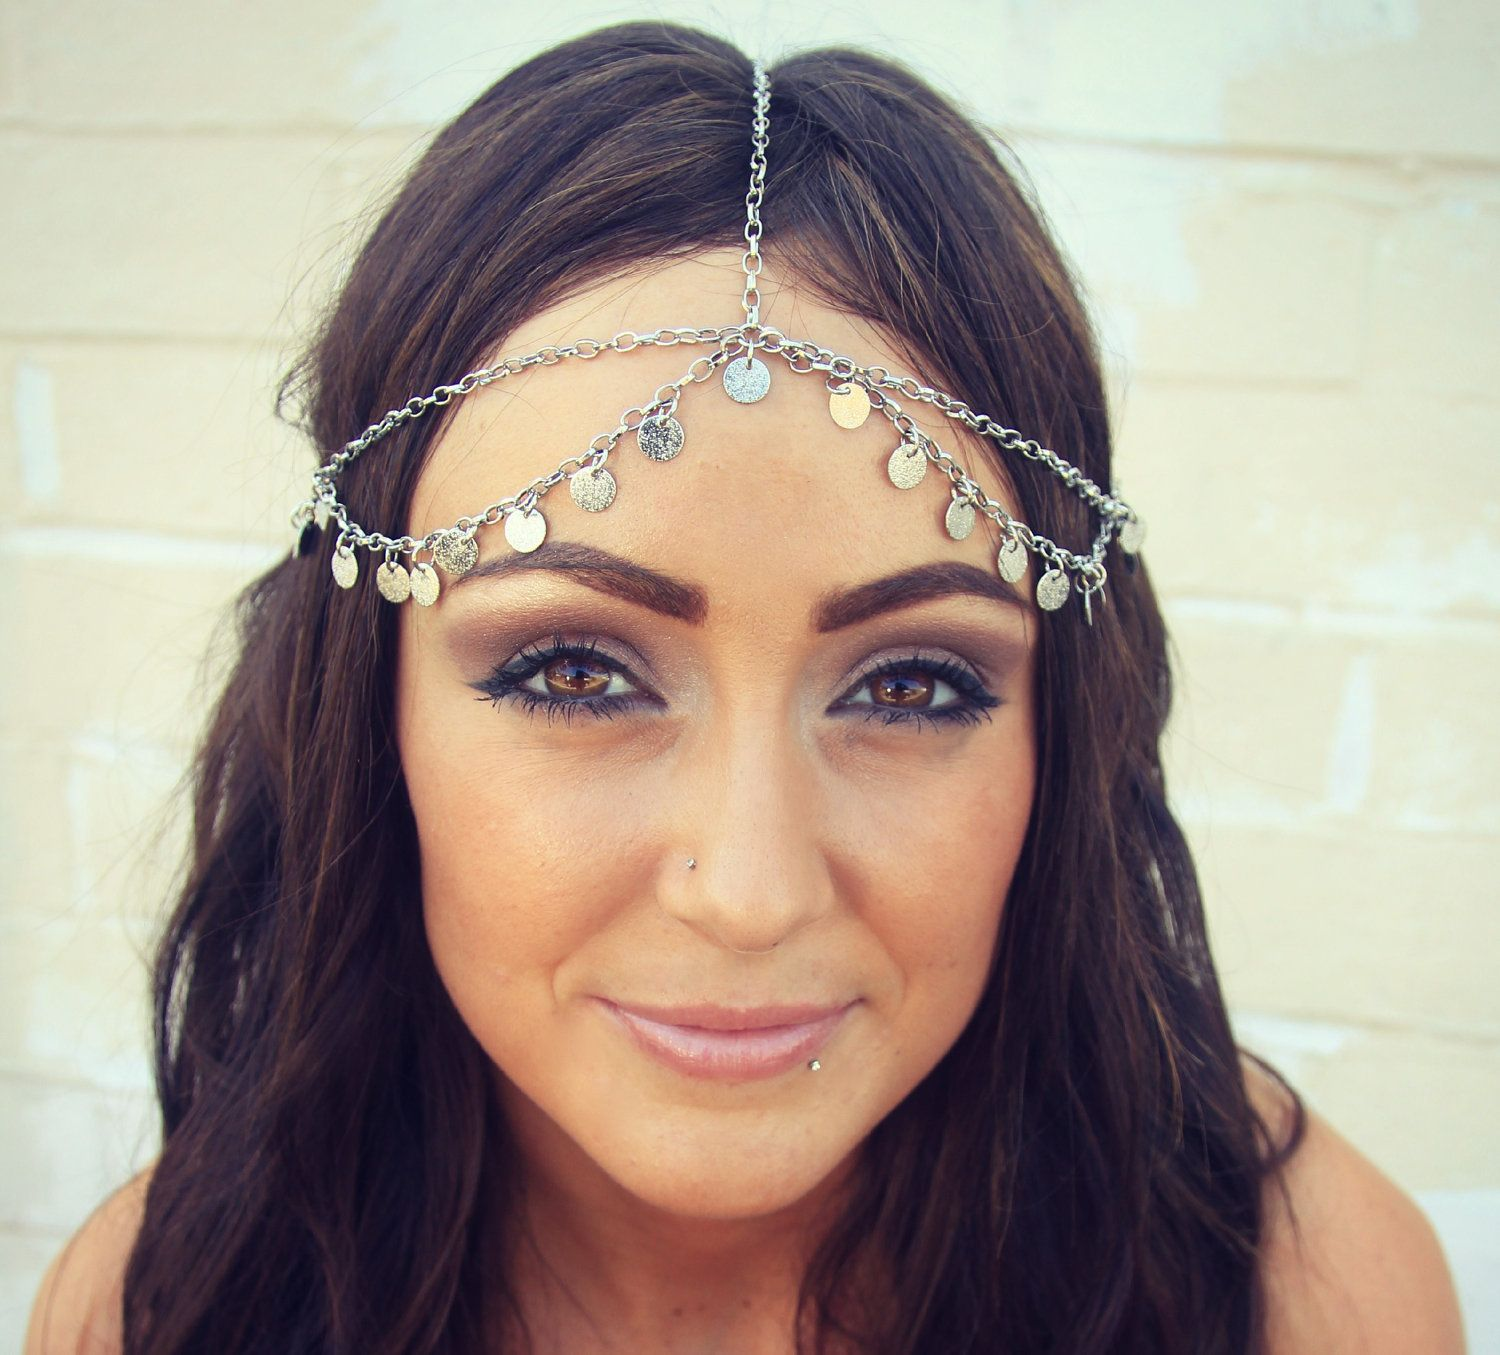 aaf5e2c48f7a1 CHAIN HEADPIECE head chain silver disc chain by LovMely on Etsy ...